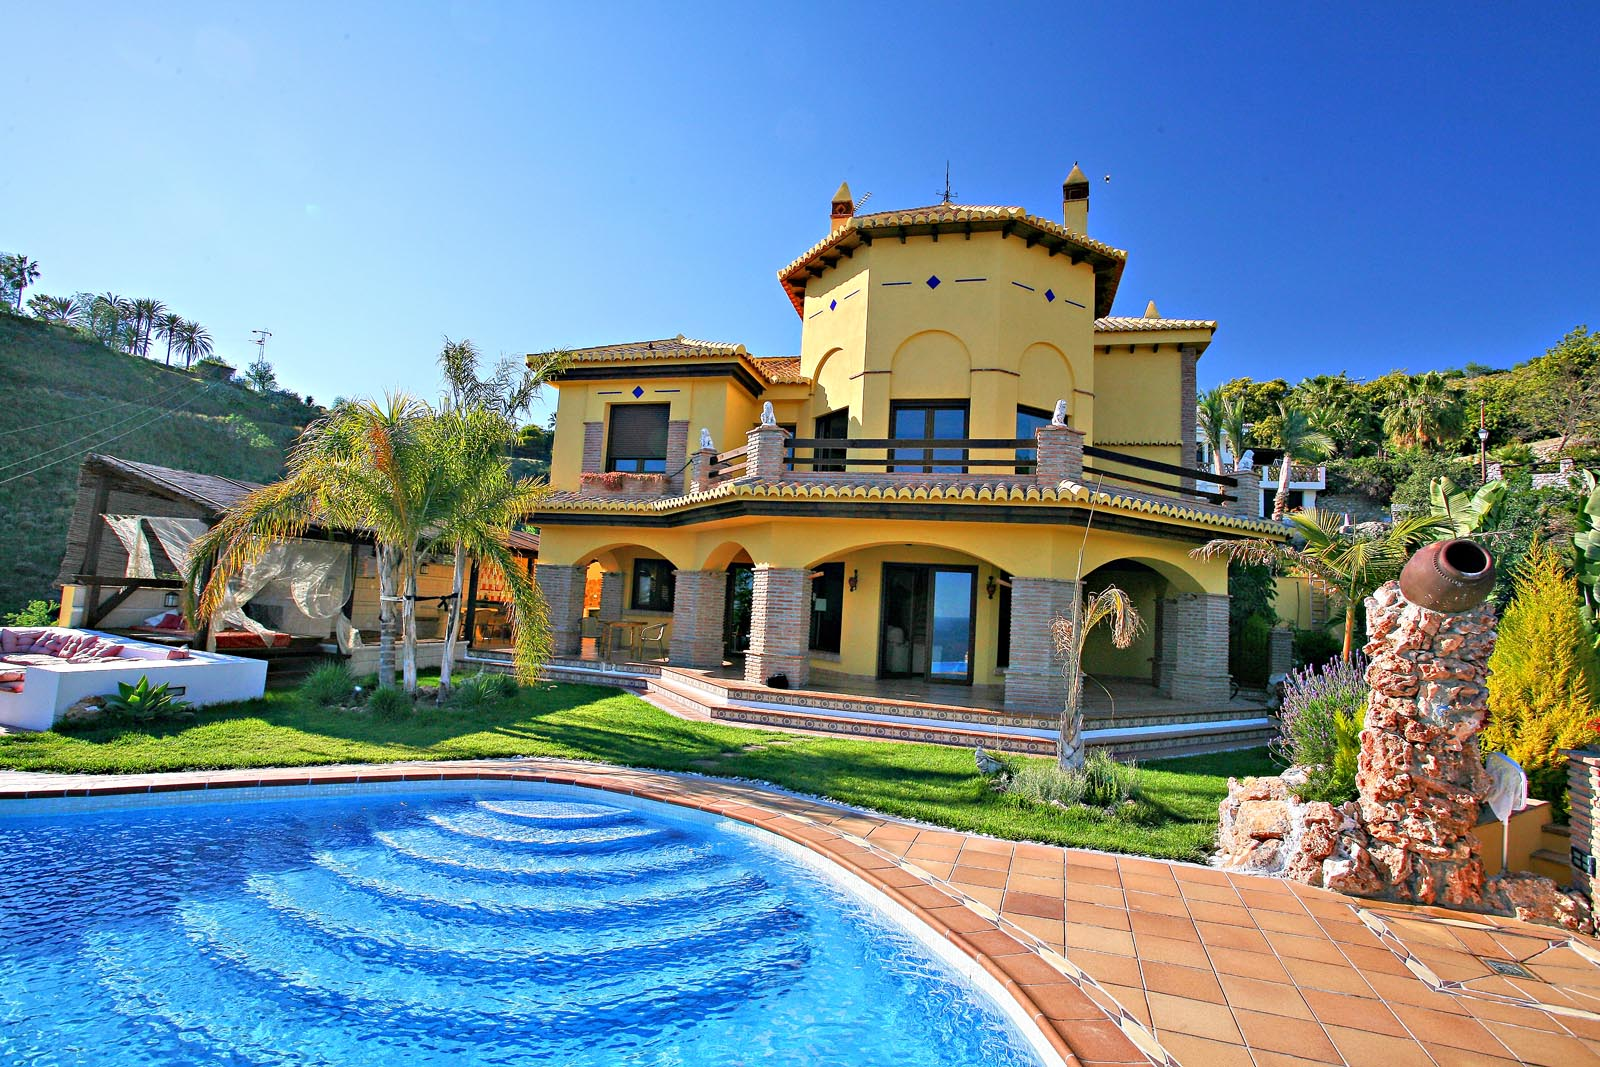 Holiday villas in spain spanish villa holidays direct for Villas apartments